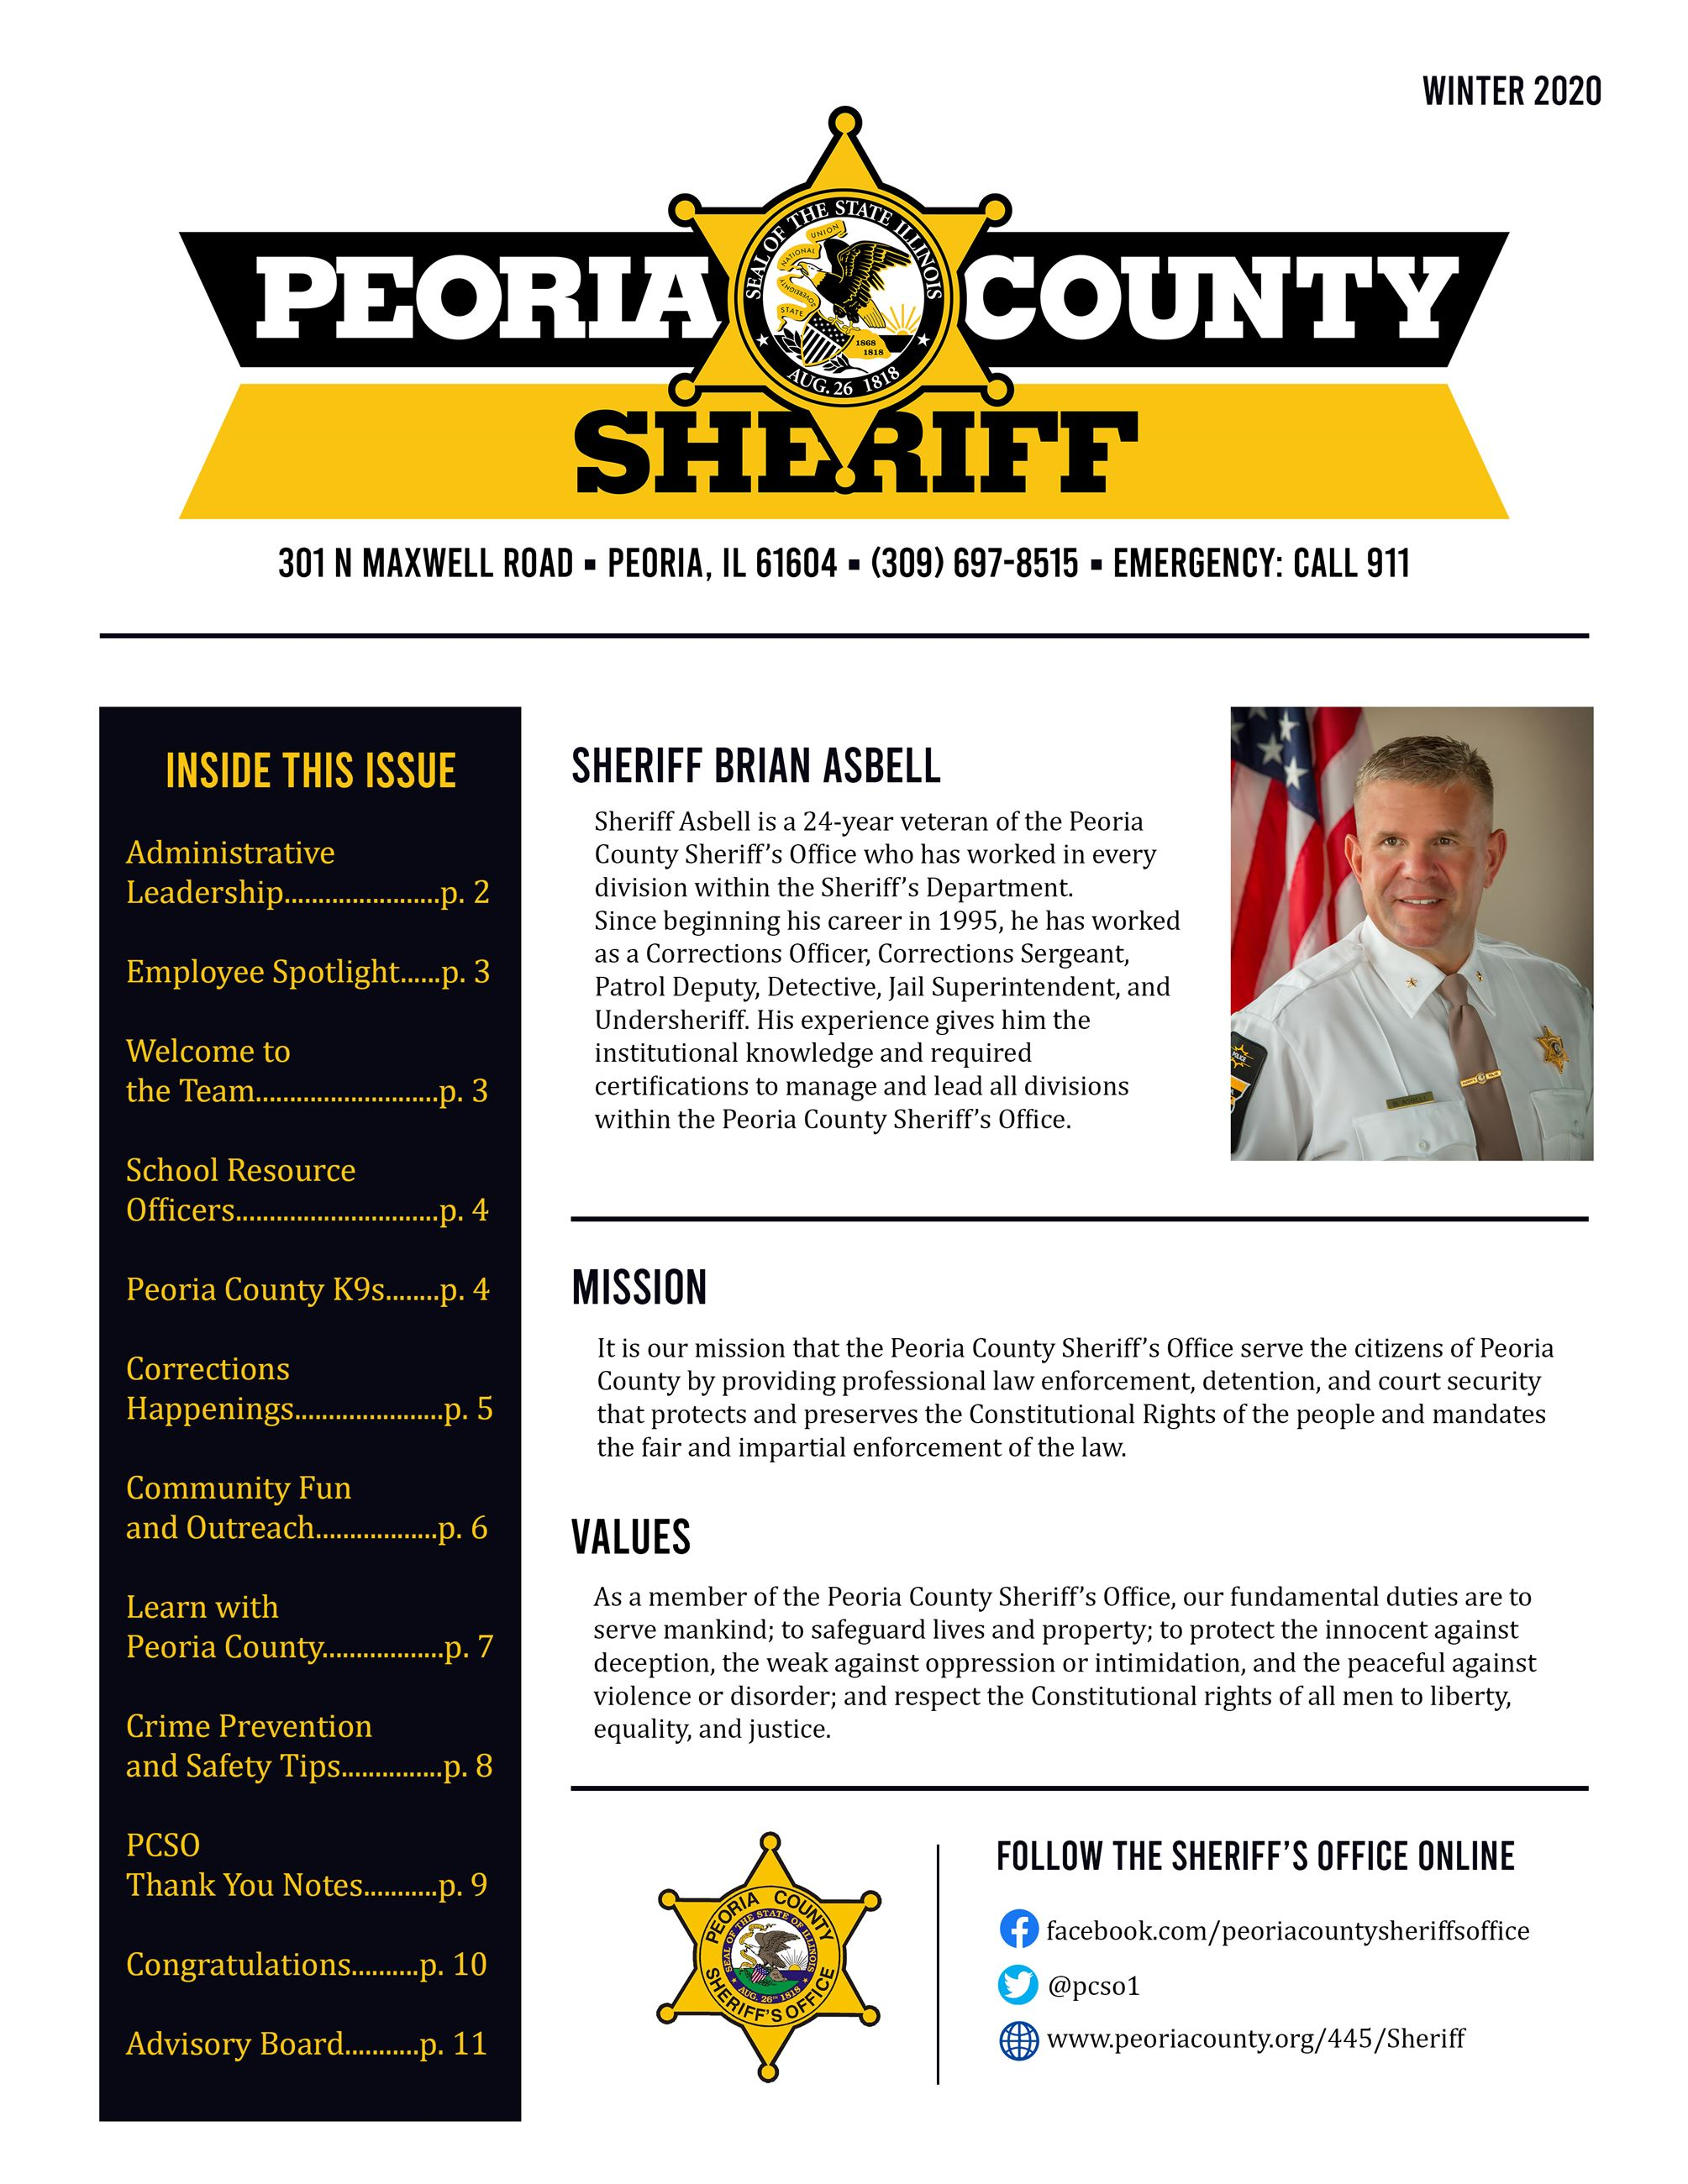 PCSO Winter 2020 Newsletter - Page 1 Cover Opens in new window